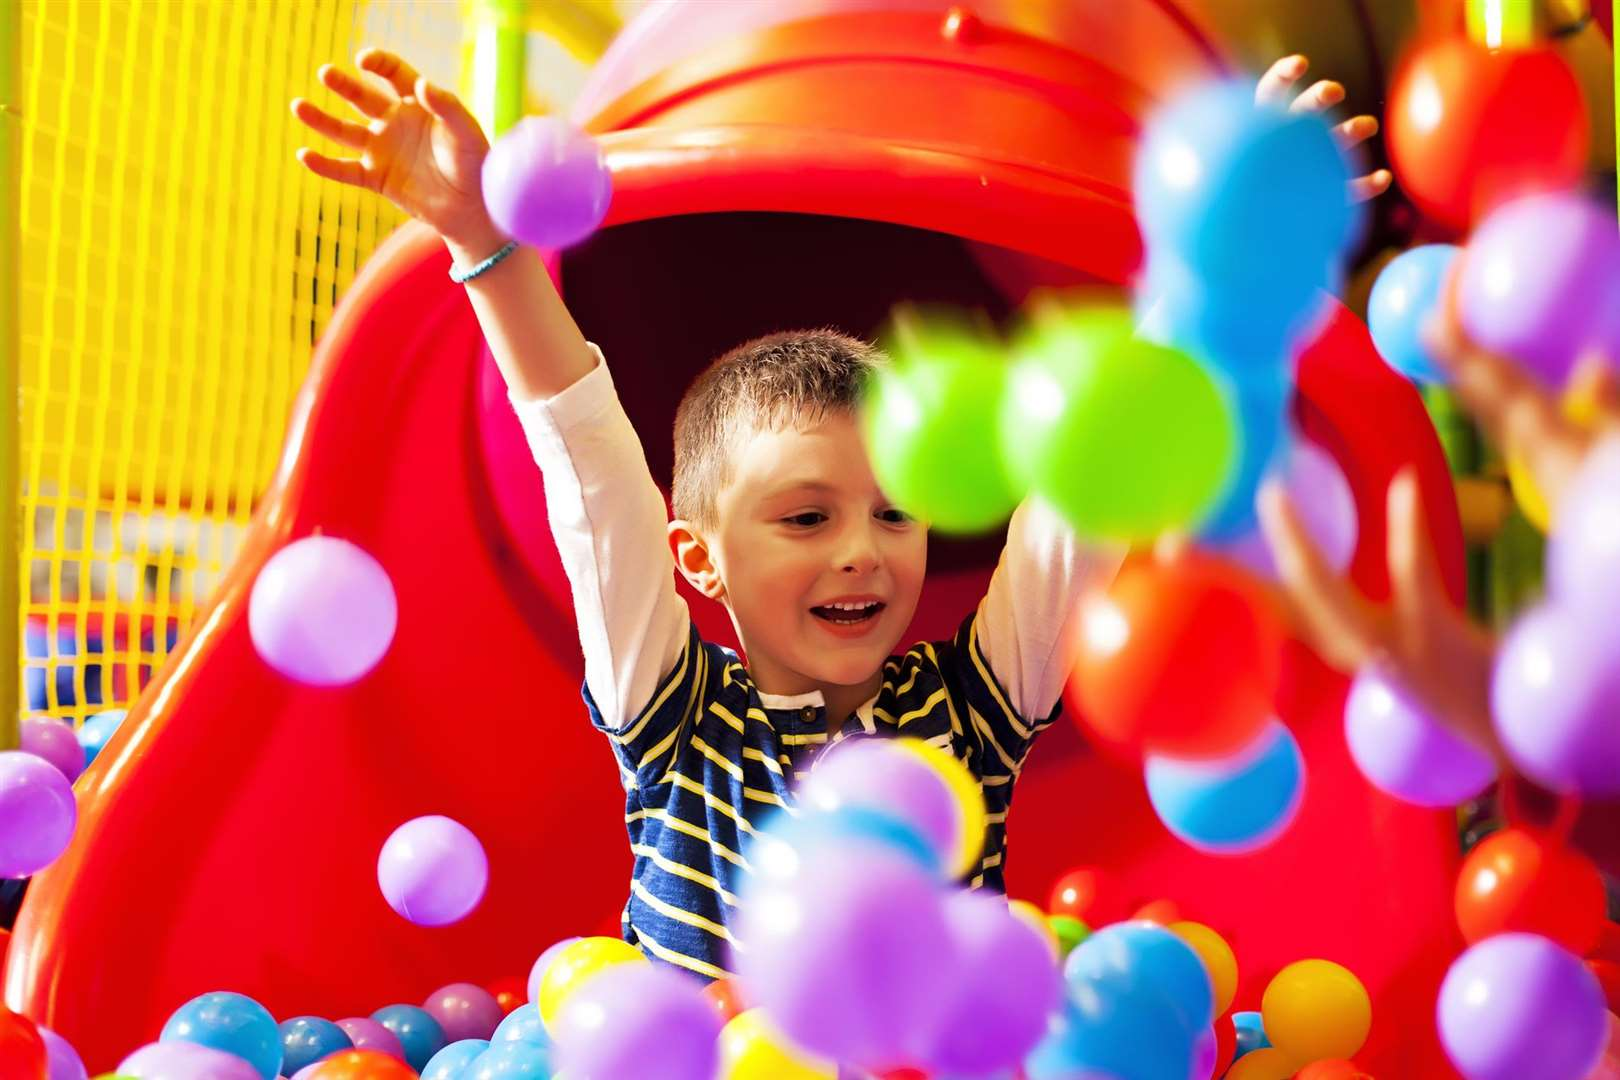 A new soft play area is being introduced